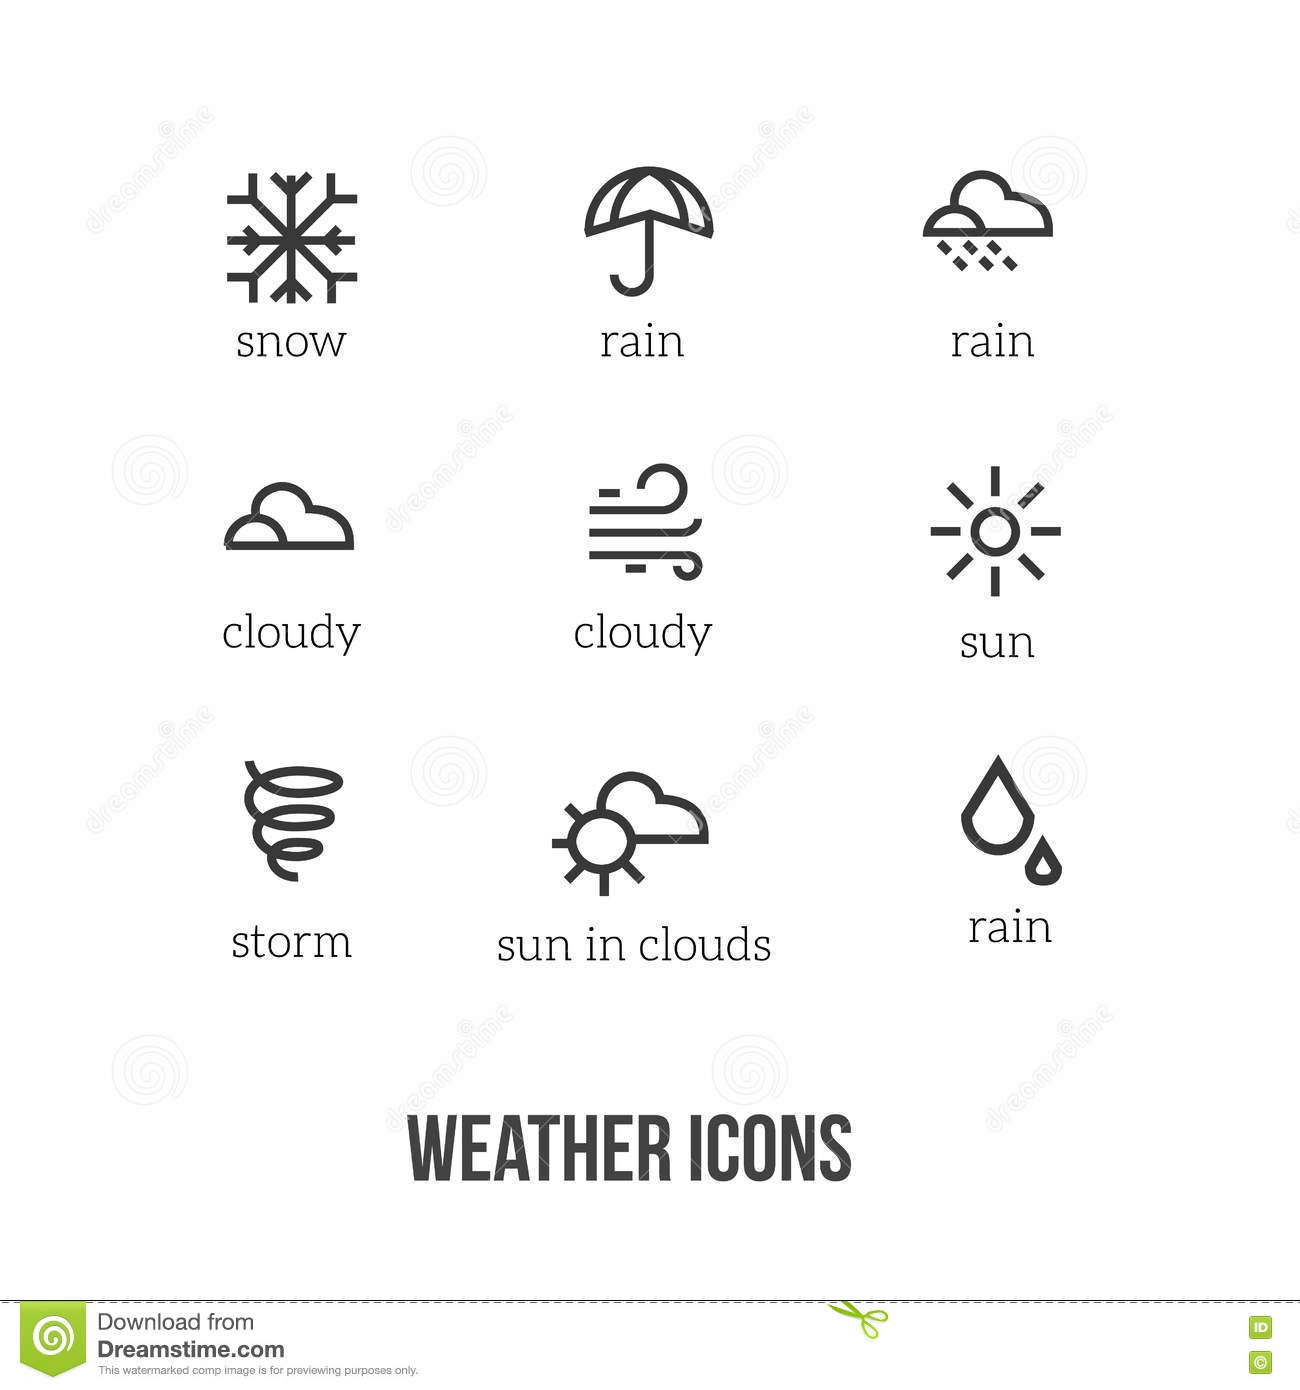 Worksheet Weather Symbols